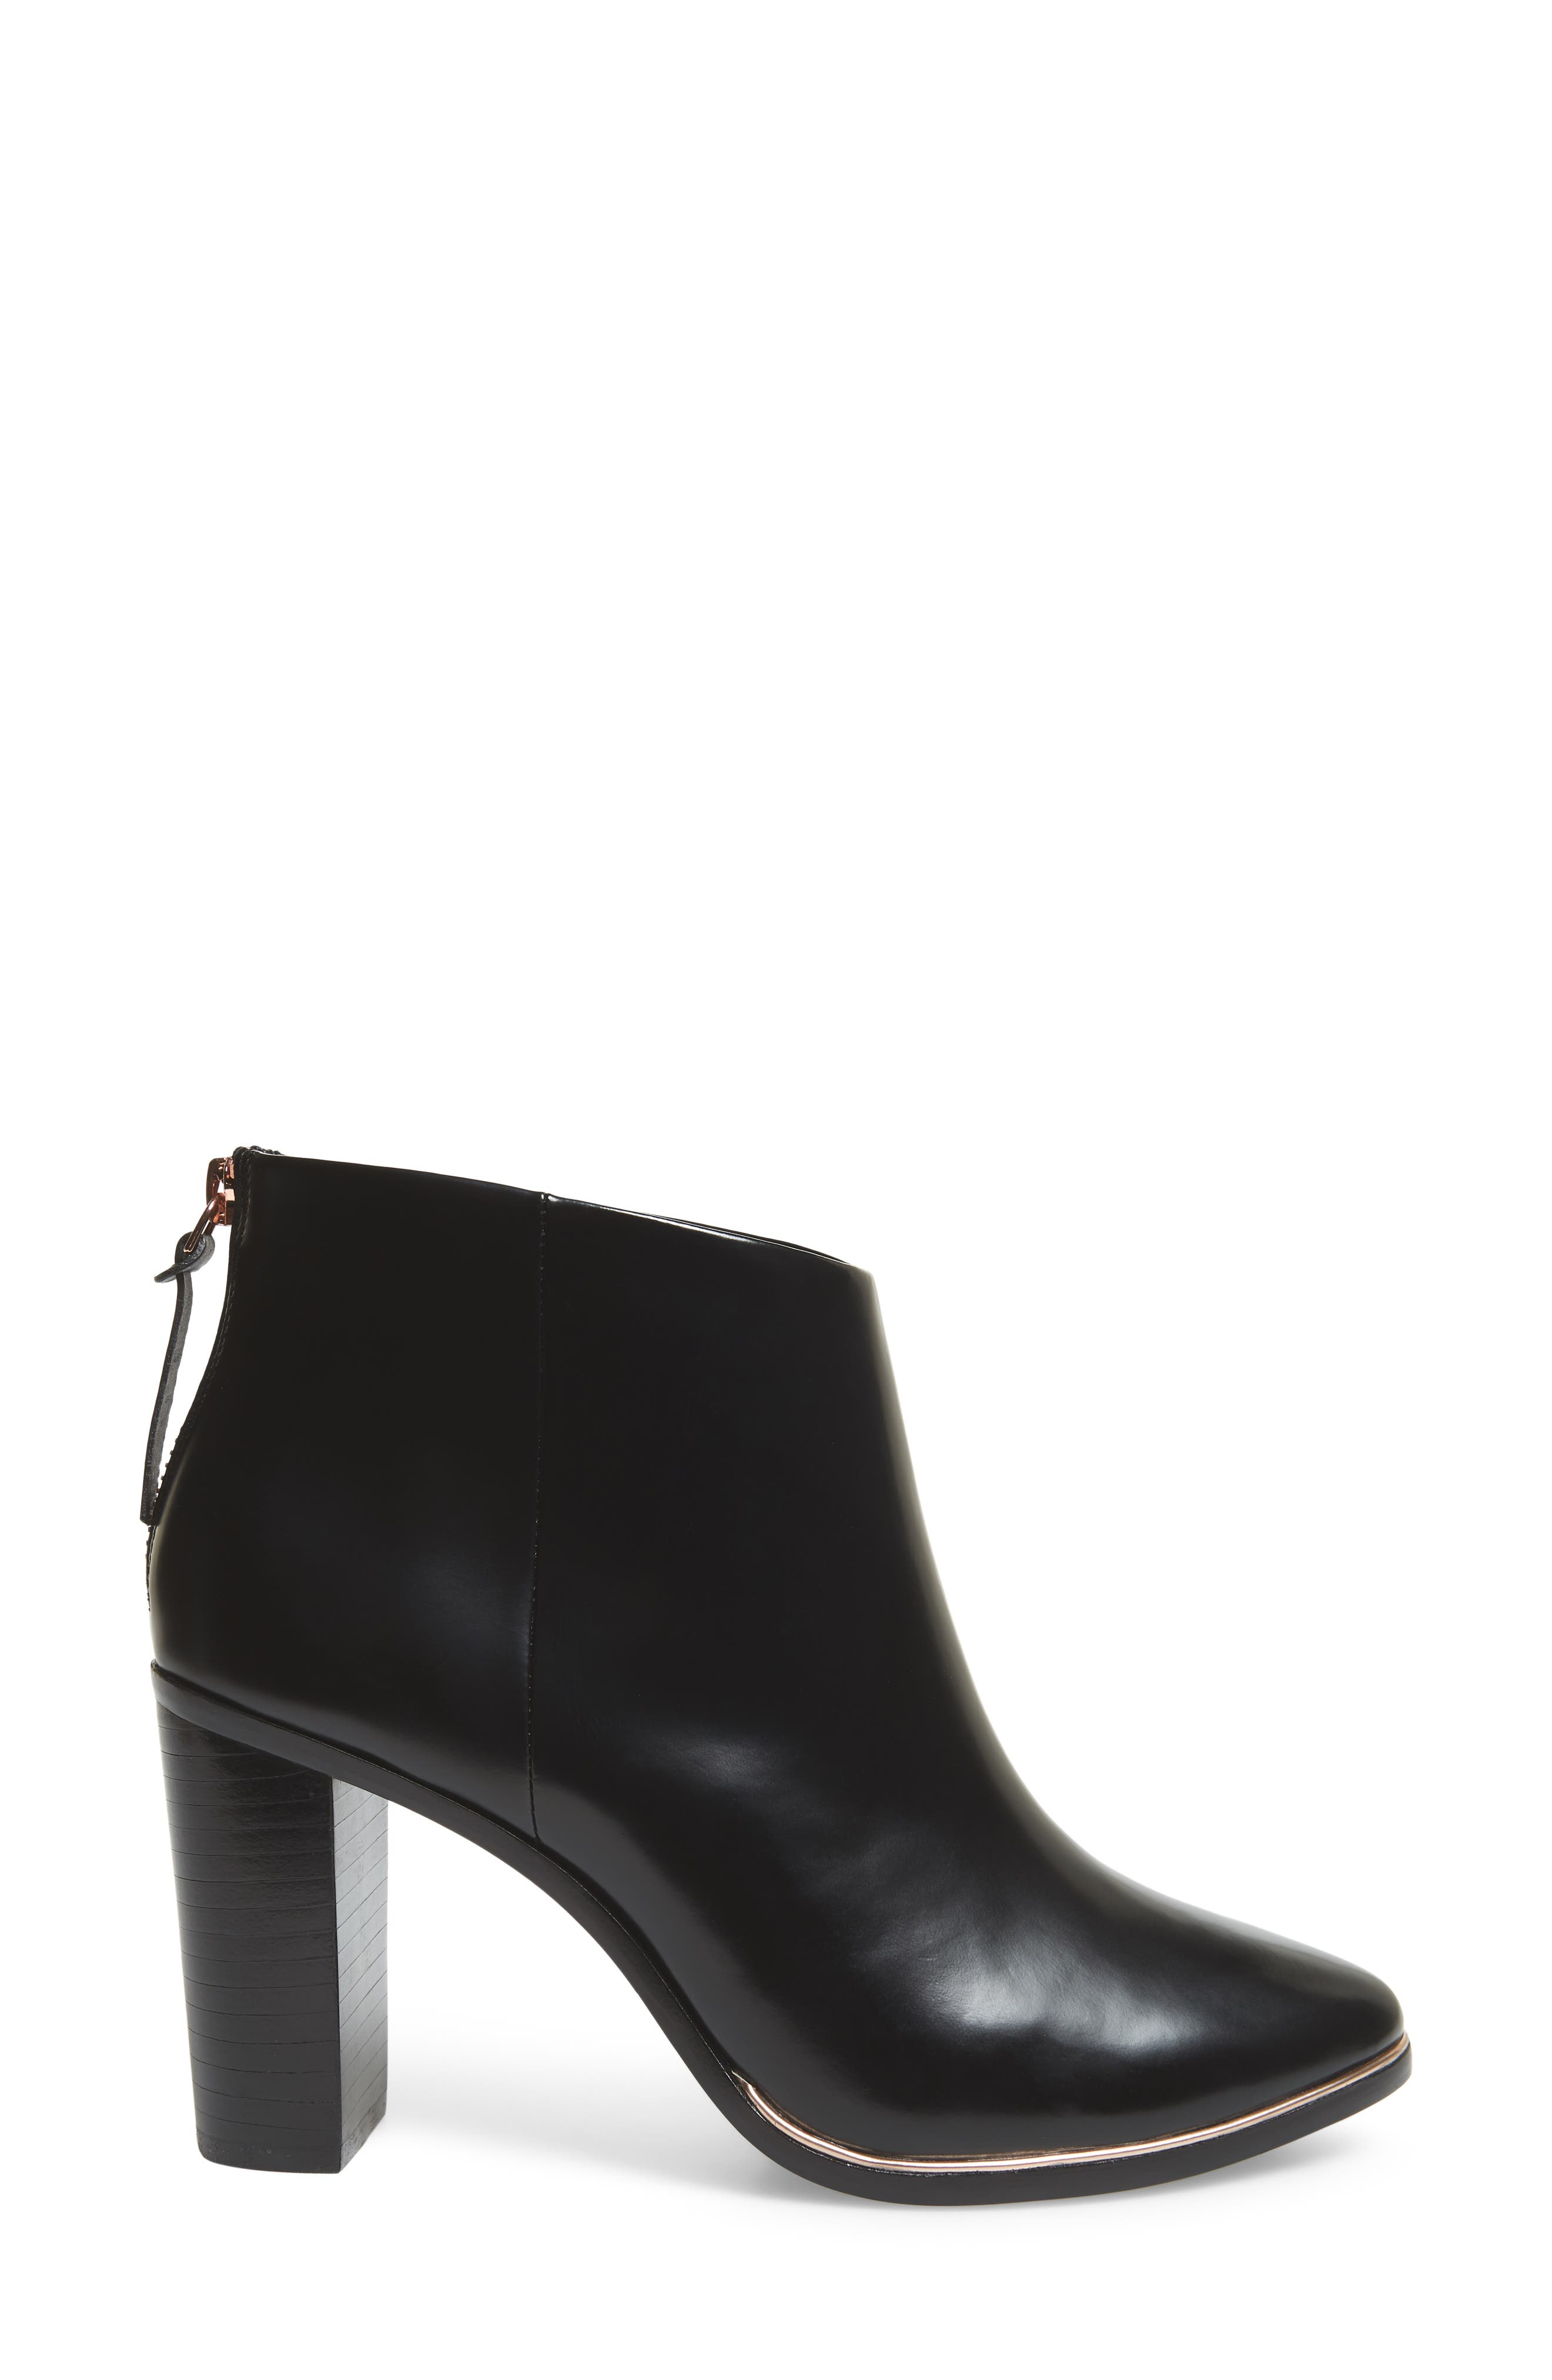 Vaully Bootie,                             Alternate thumbnail 3, color,                             BLACK LEATHER